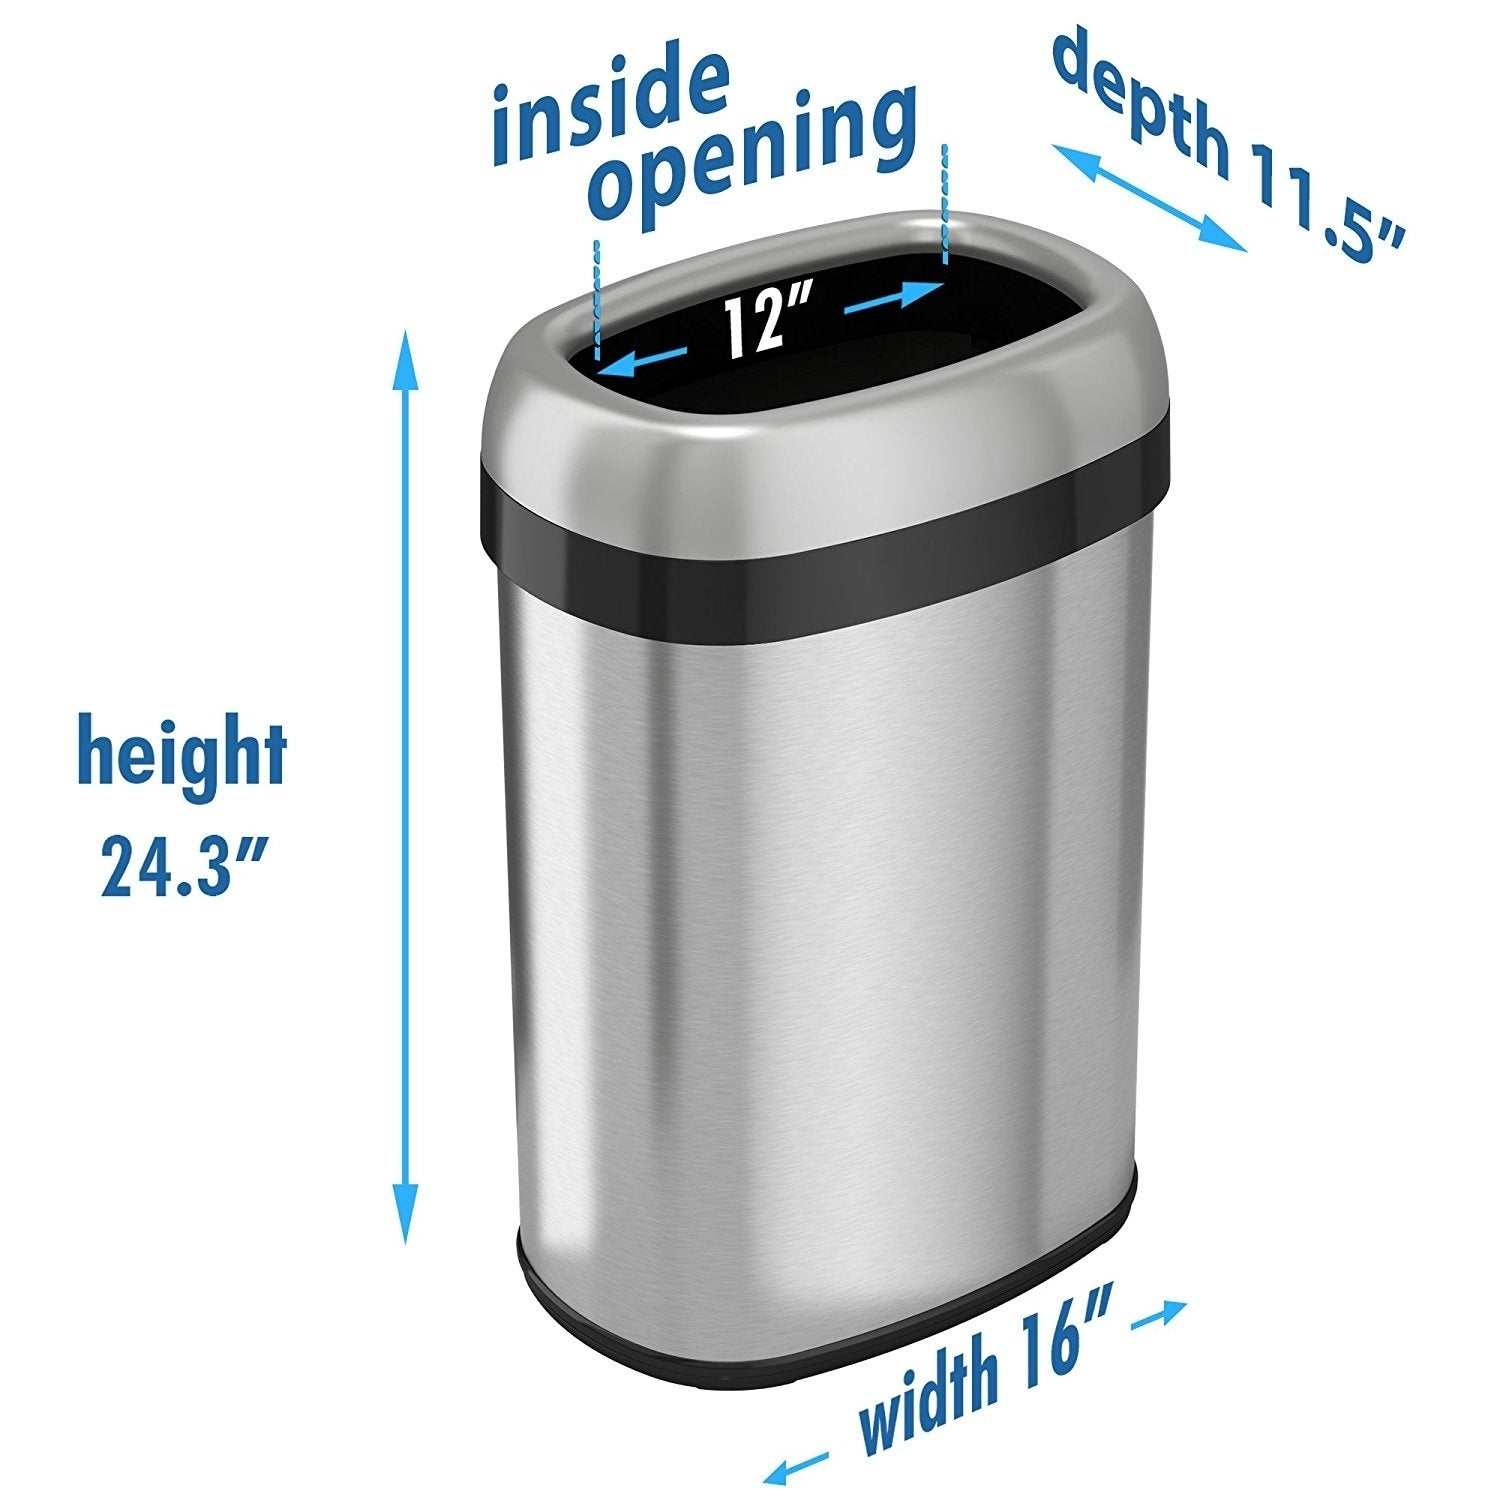 Dual Deodorizer Oval Open Top Stainless Steel Commercial Trash Can   Free  Shipping Today   Overstock.com   10512787